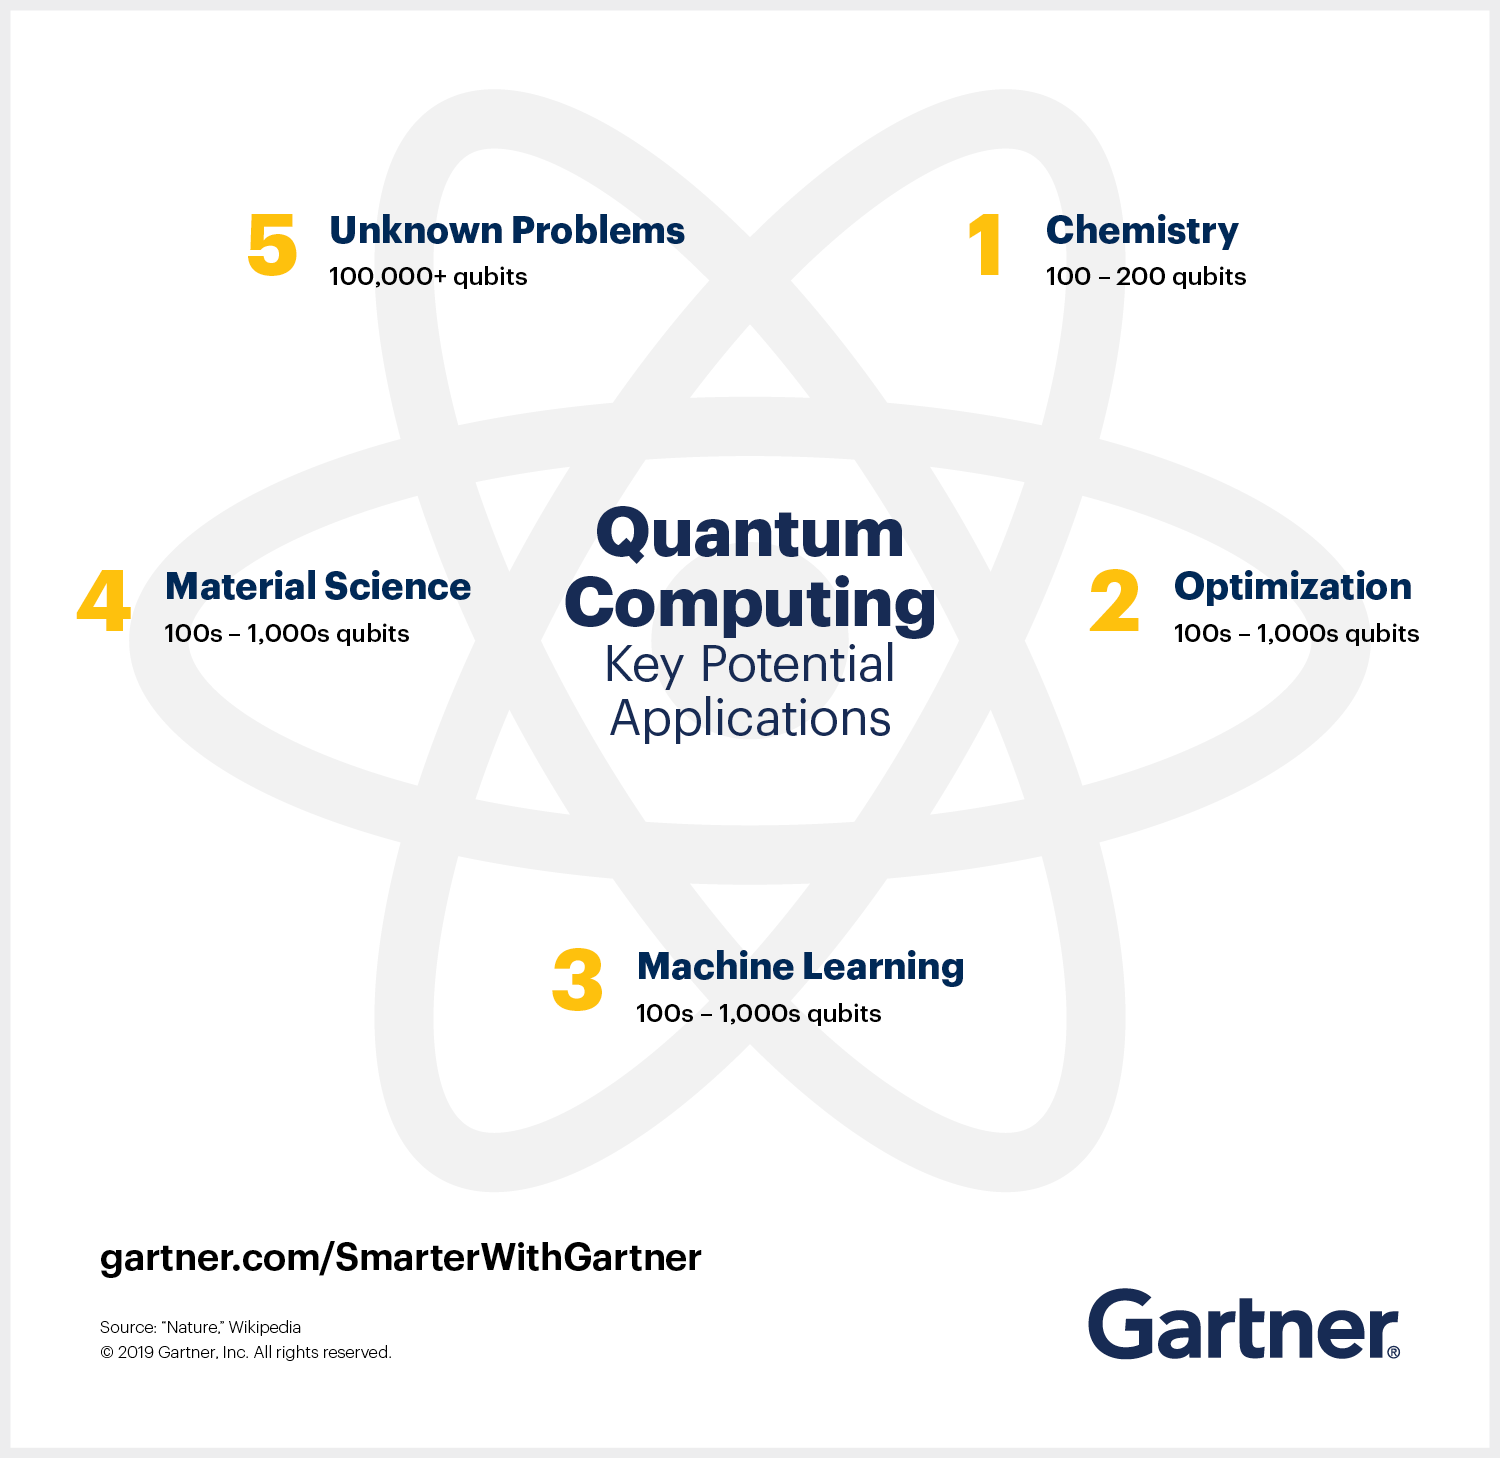 Gartner analyst Matt Brisse shared a graphic explaining the five key potential applications of quantum computing including chemistry, optimization, machine learning, material science and unknown problems.